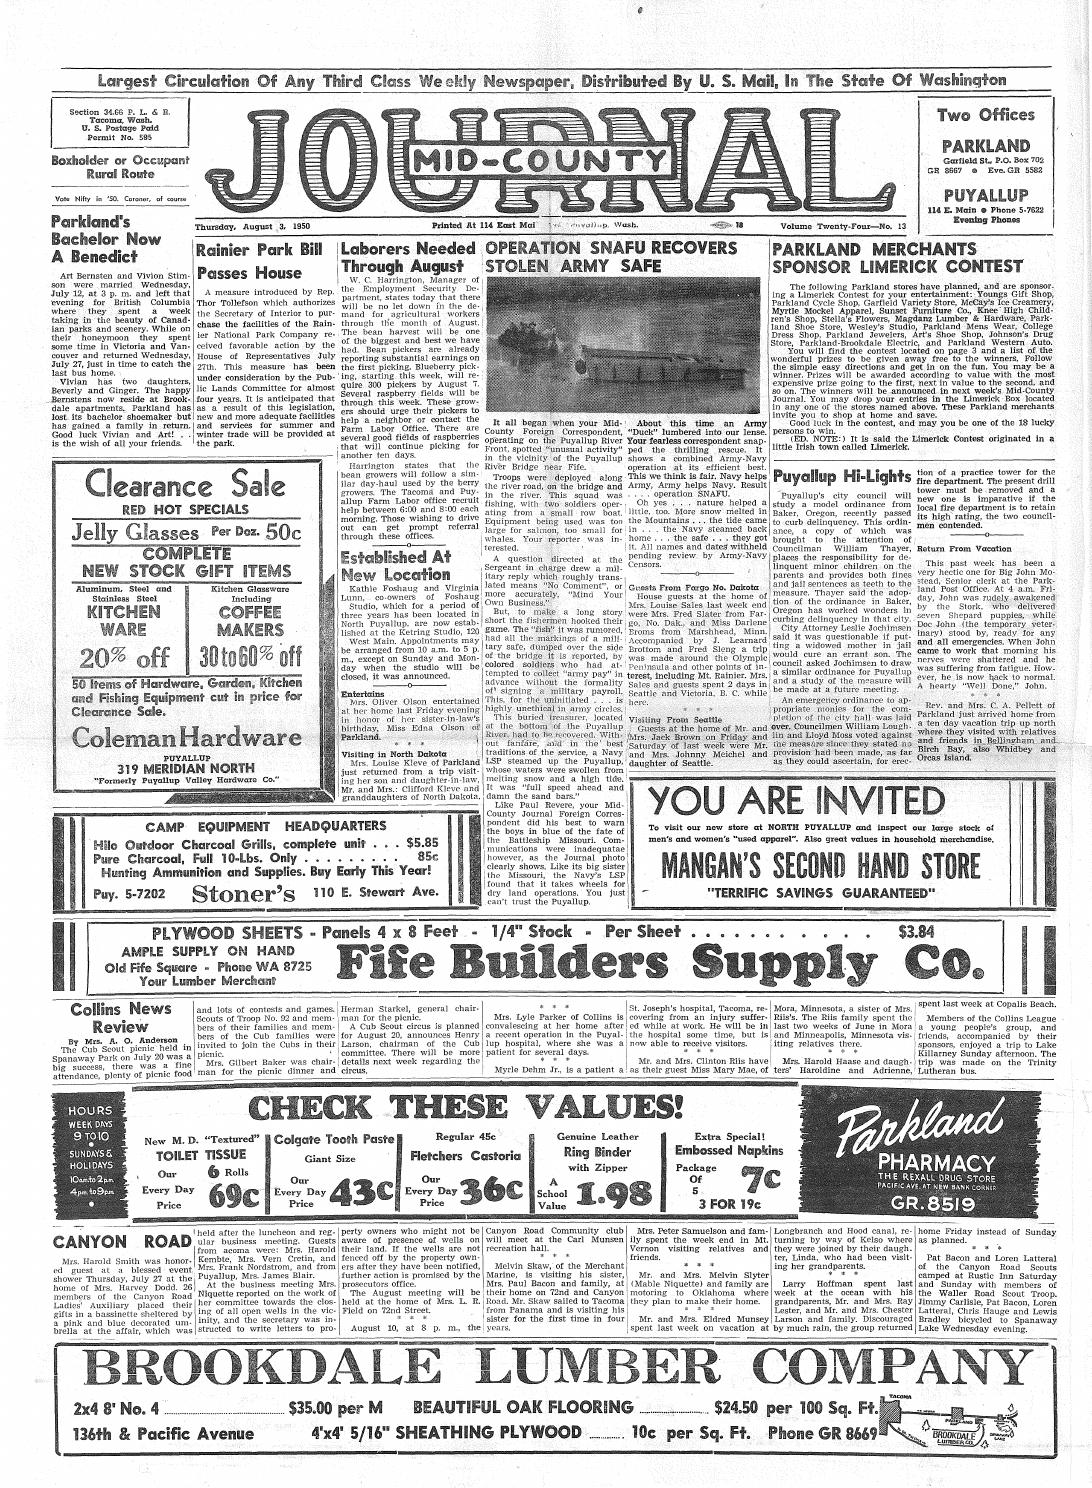 Mid county journal v 24 no 13 aug 3, 1950 by Pacific Lutheran ...